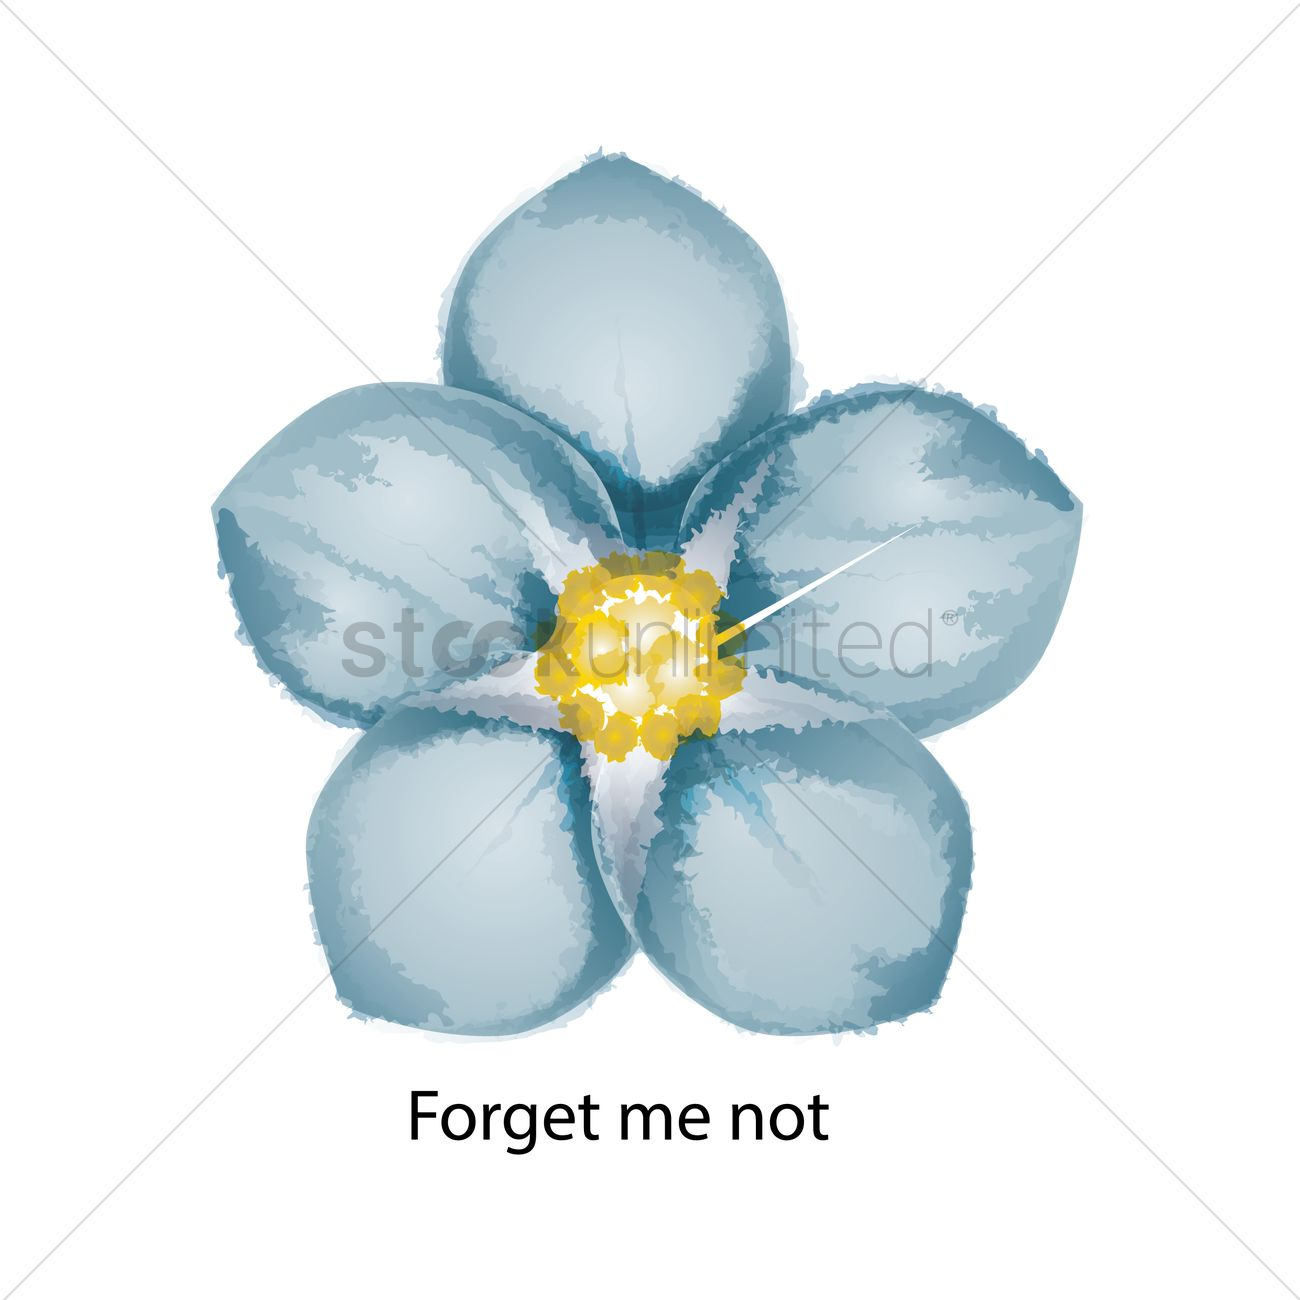 1300x1300 Forget Me Not Vector Image